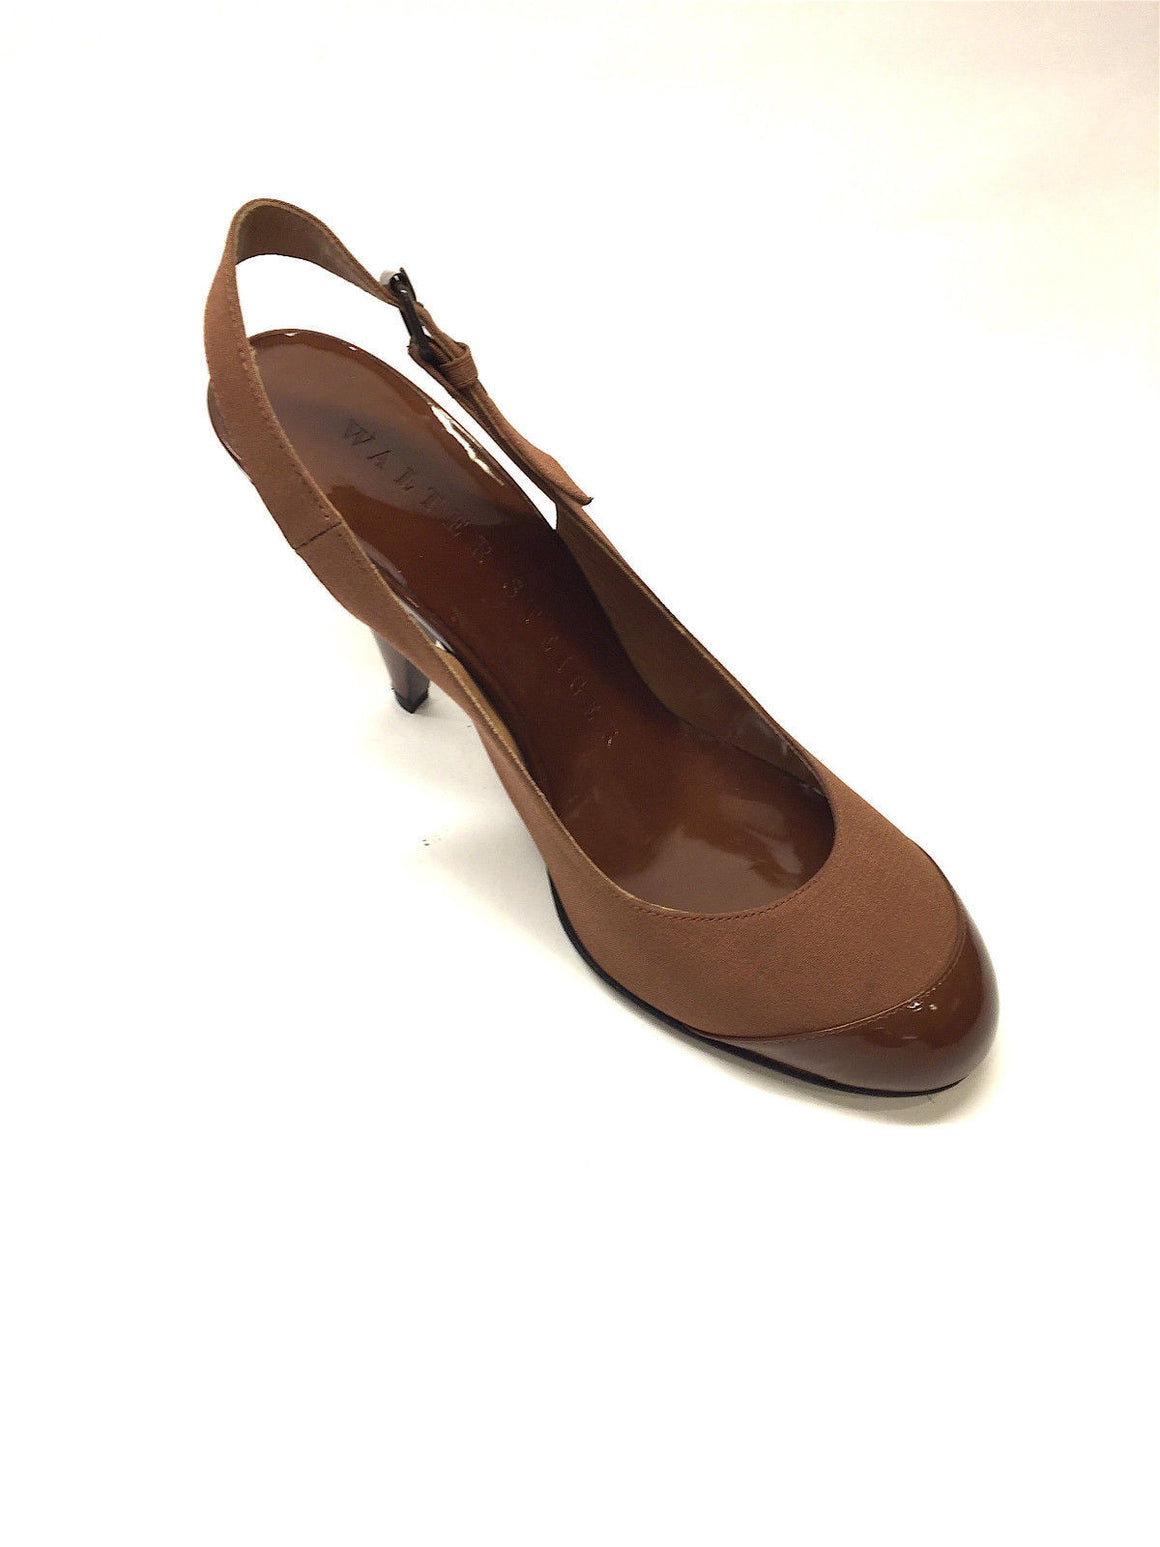 bisbiz.com WALTER STEIGER   Caramel Faille & Patent Leather Slingback Heel Pumps Shoes Size: 39.5 - Bis Luxury Resale